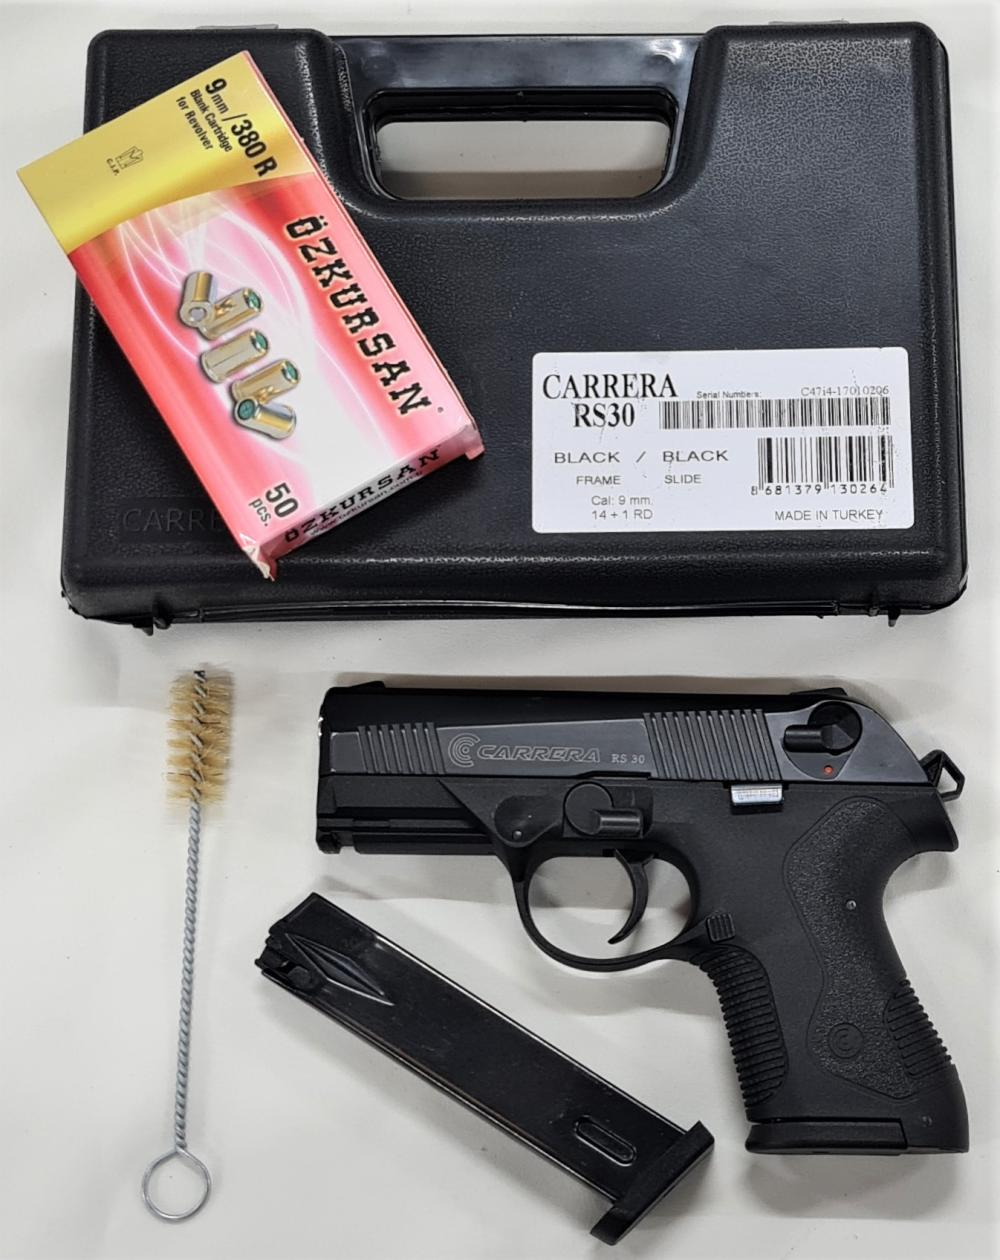 2000's blank firing carrera RS 30 9mm pistol with box of 44 blank rounds